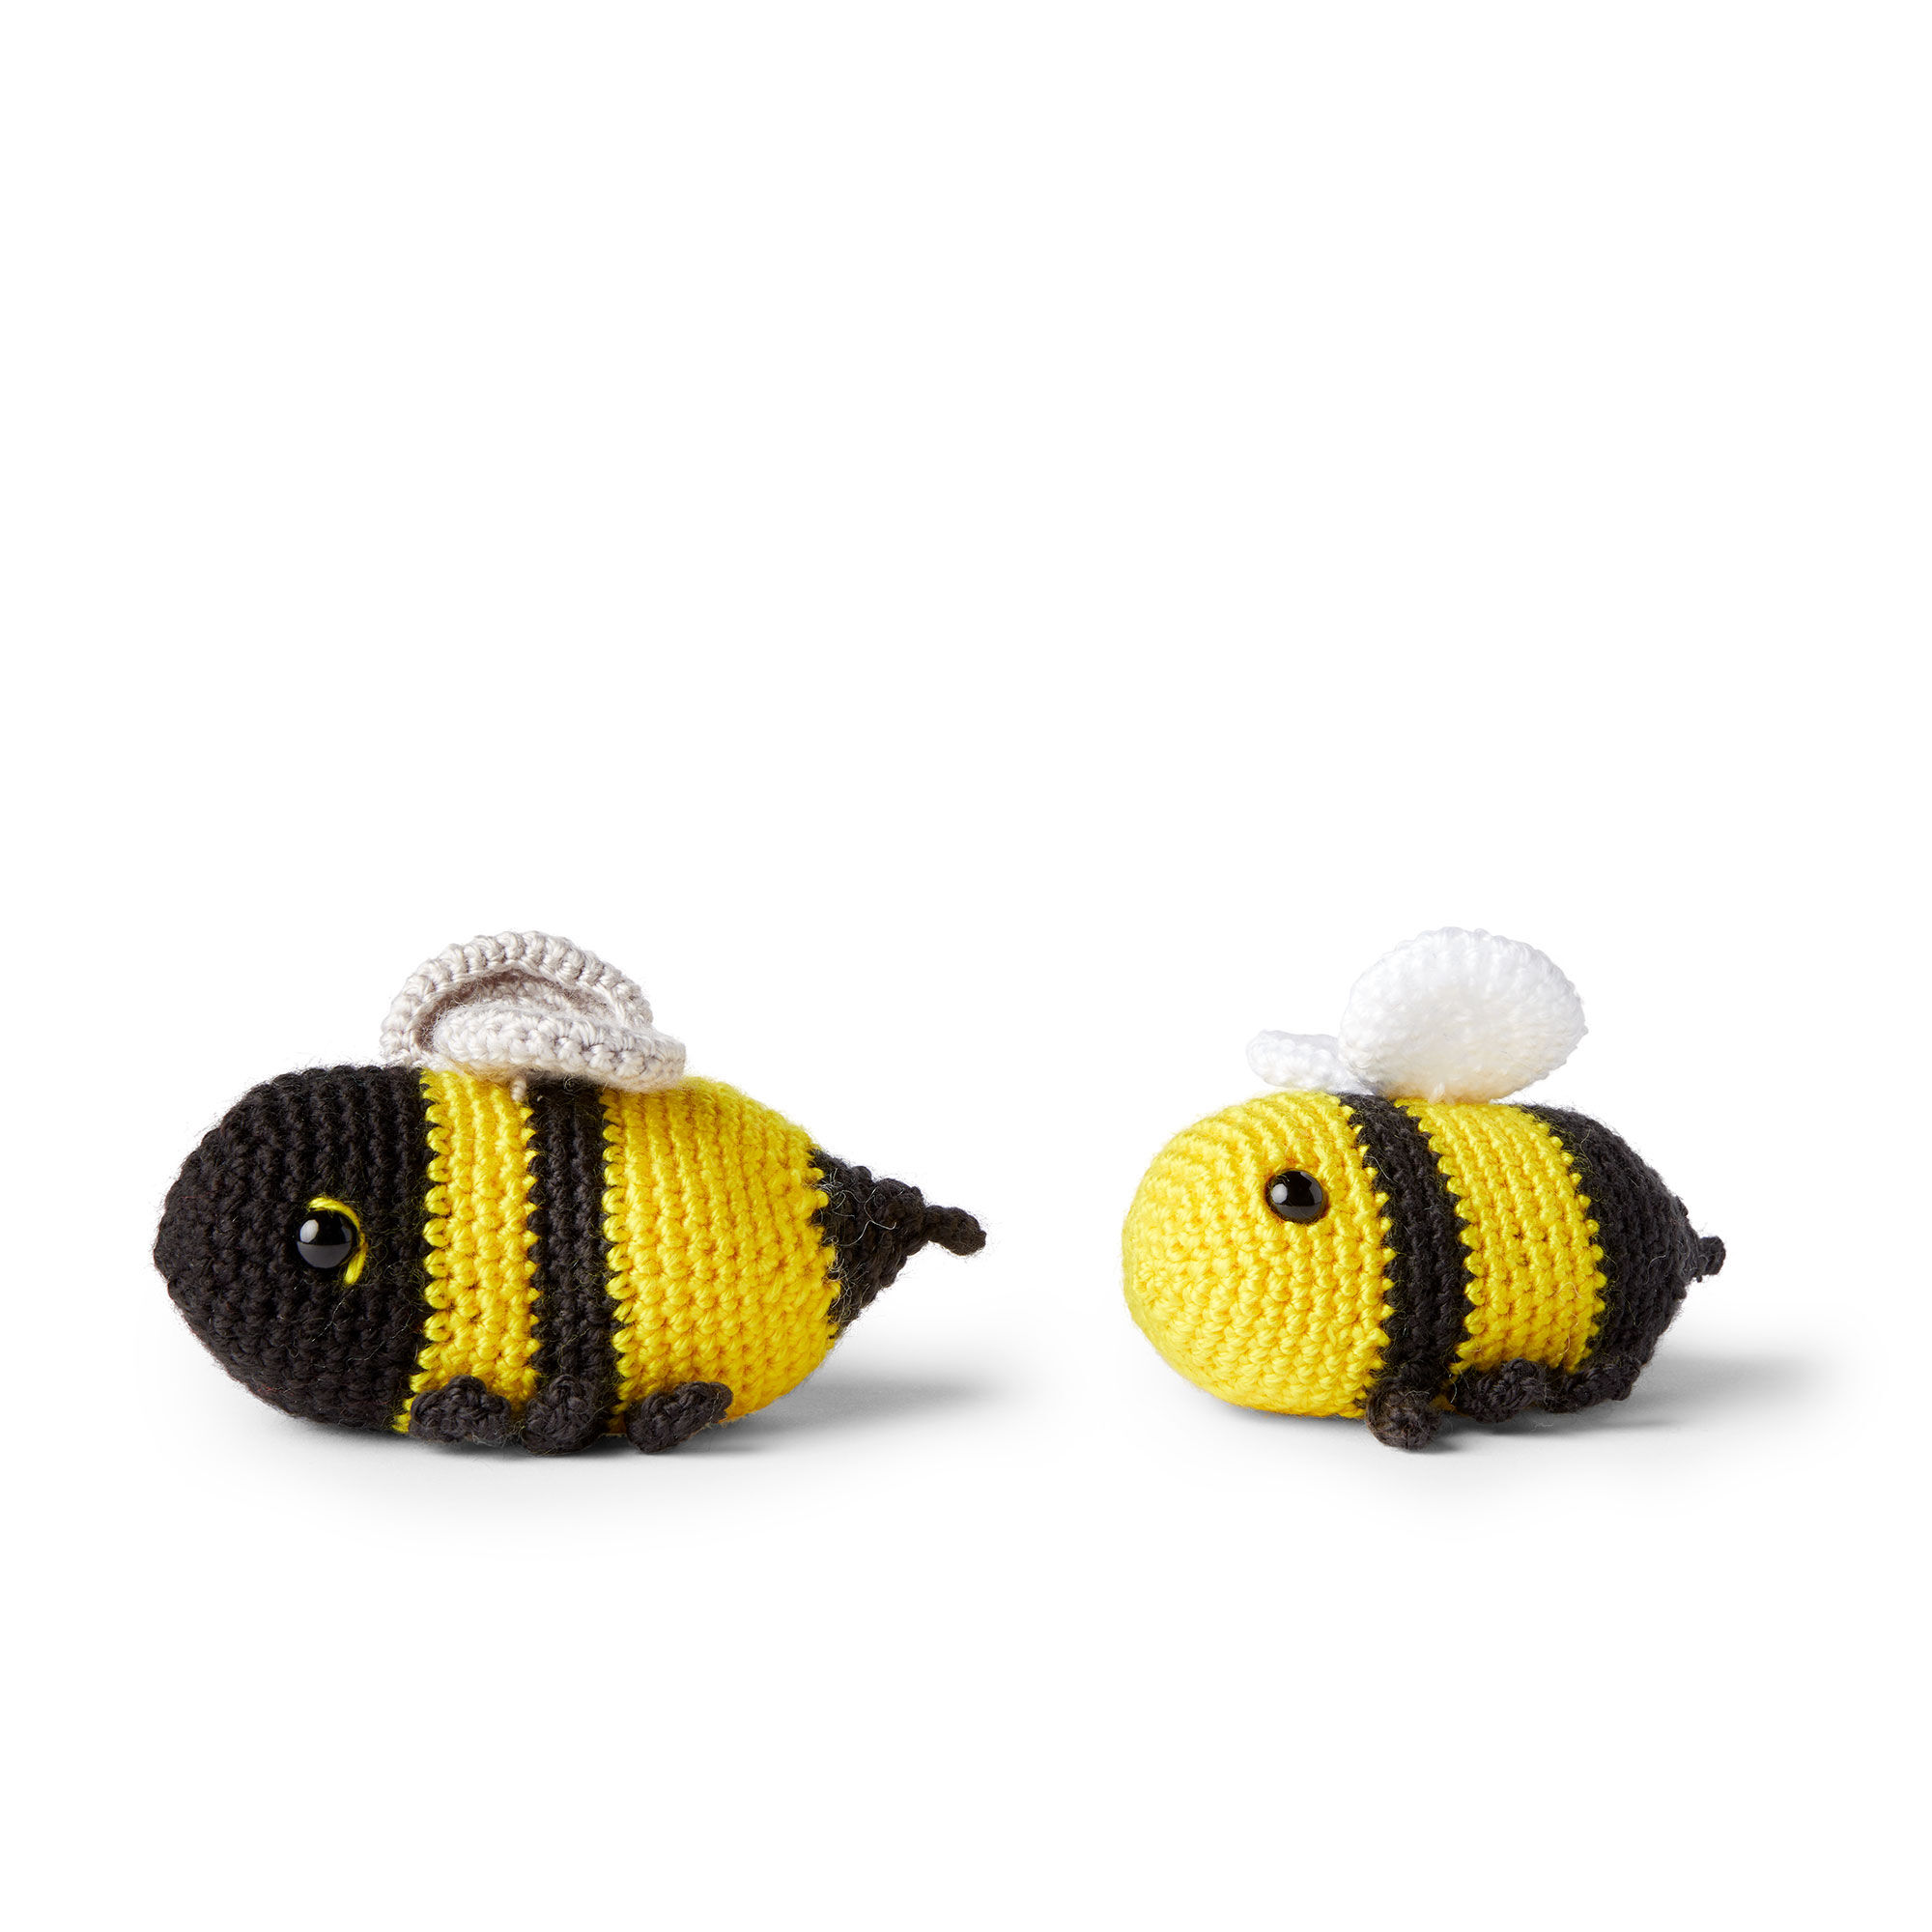 Bumble Bee Free Crochet Pattern • Spin a Yarn Crochet | 2000x2000